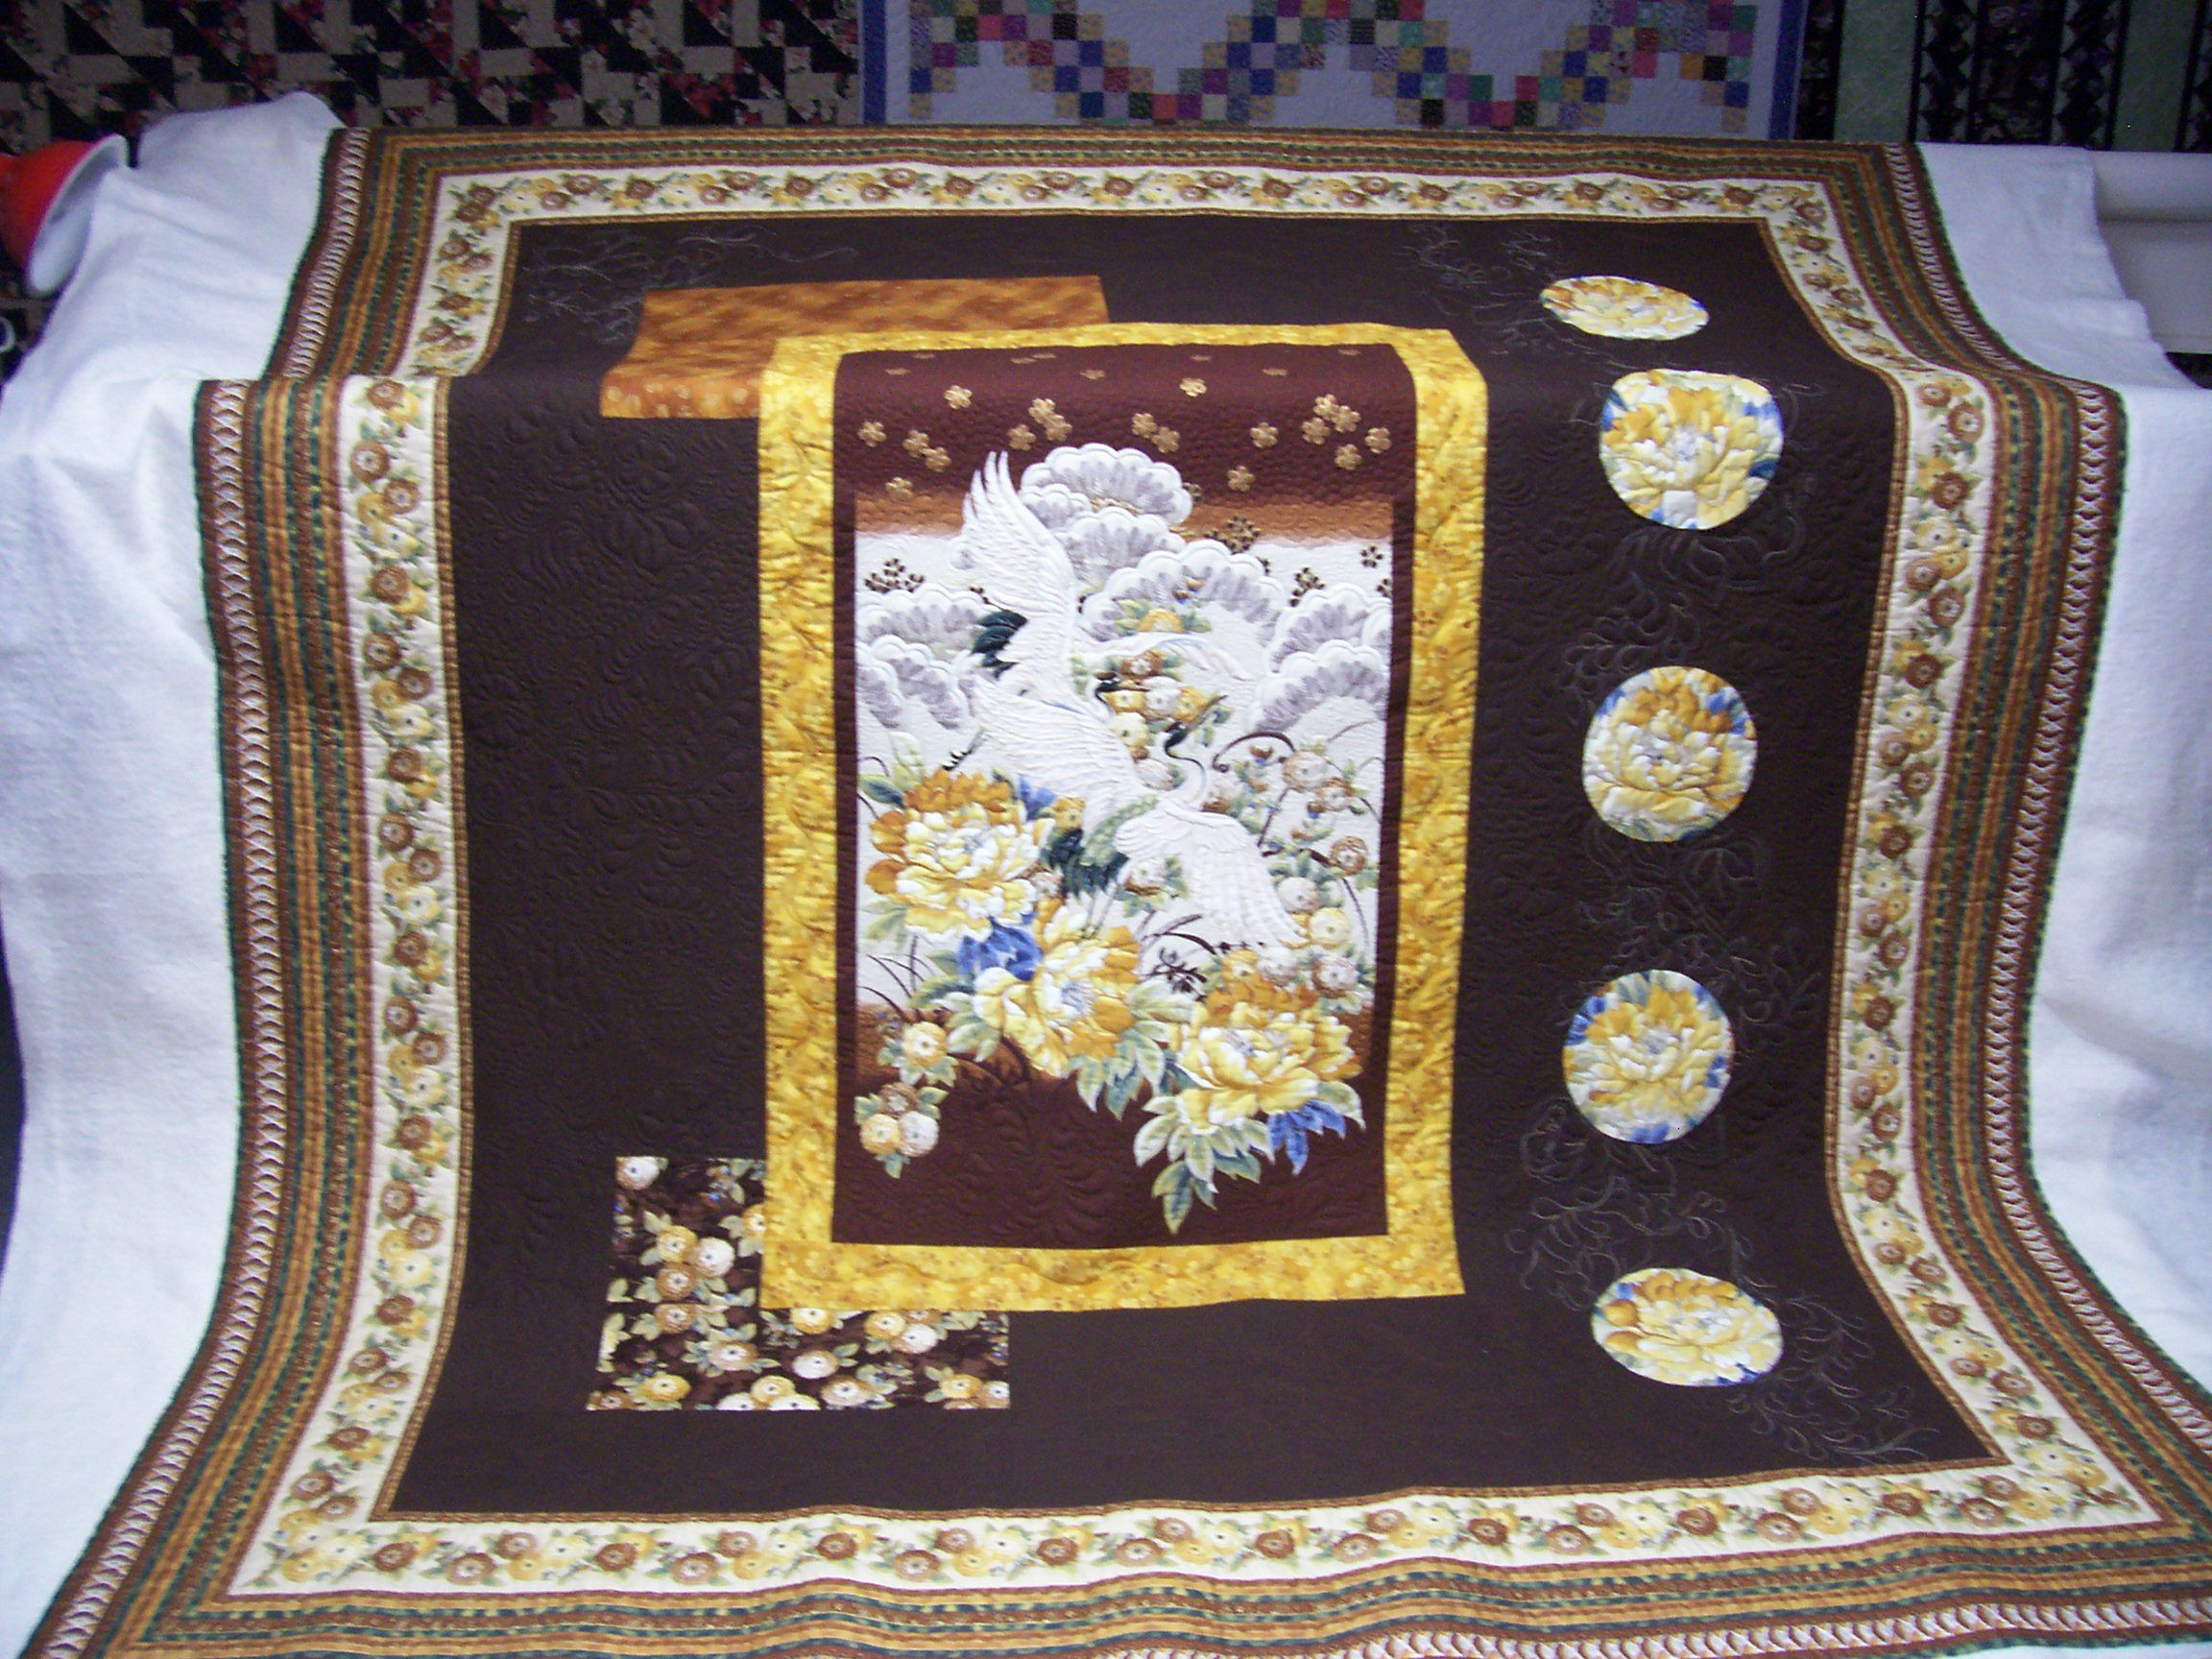 Asian quilting fabric panels remarkable, rather